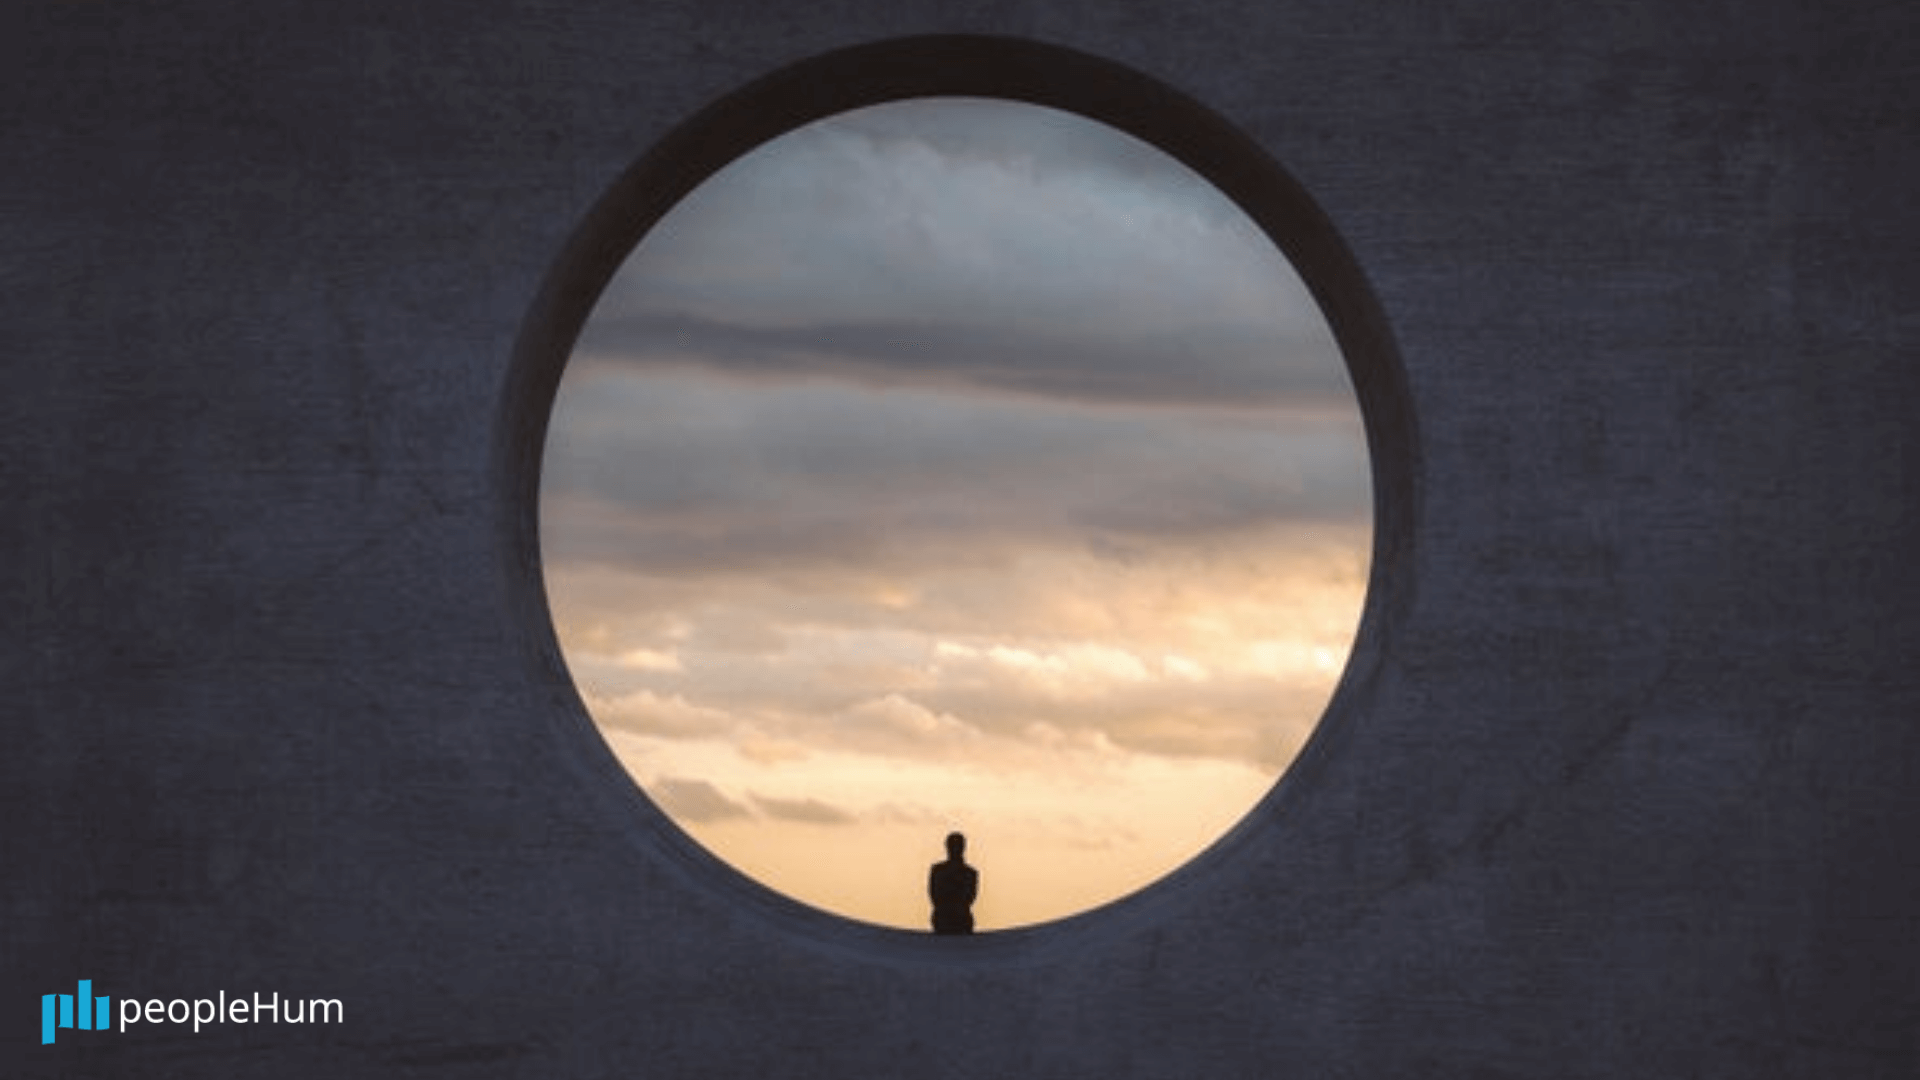 Employee wellbeing: The seven characteristics of conscious leadership